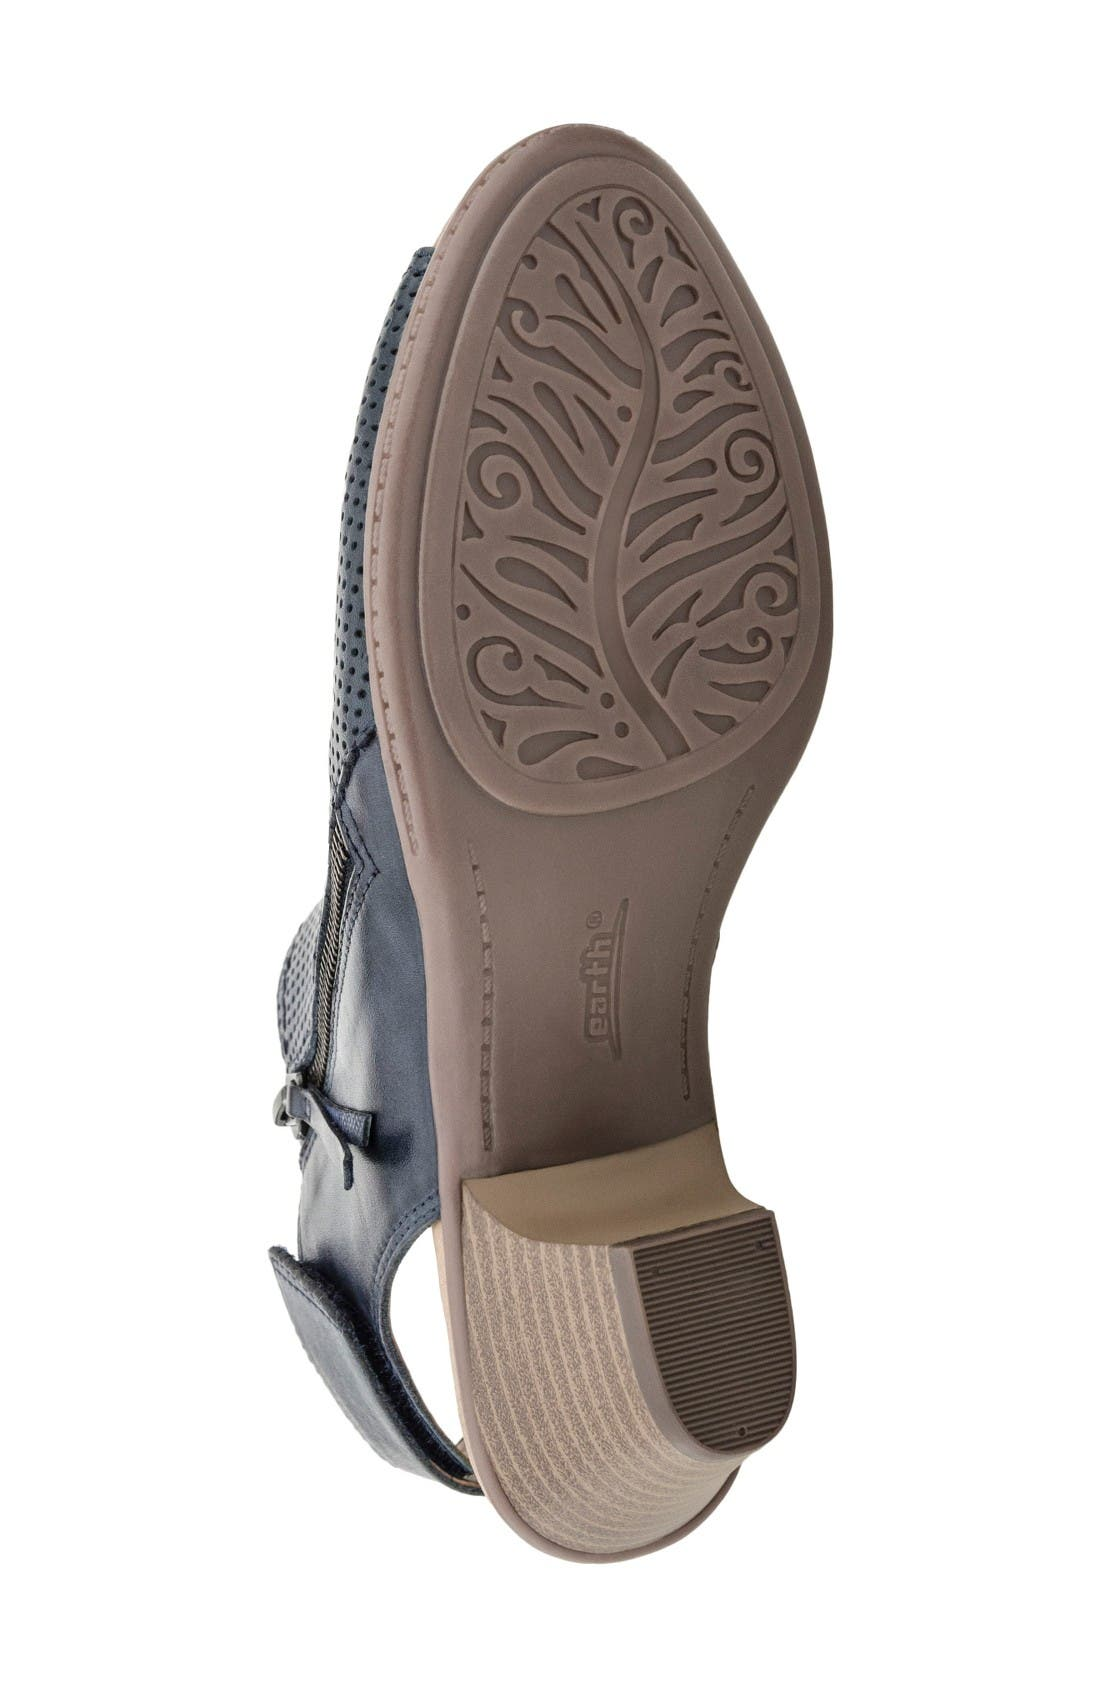 Hydra Sandal,                             Alternate thumbnail 4, color,                             Admiral Blue Soft Leather